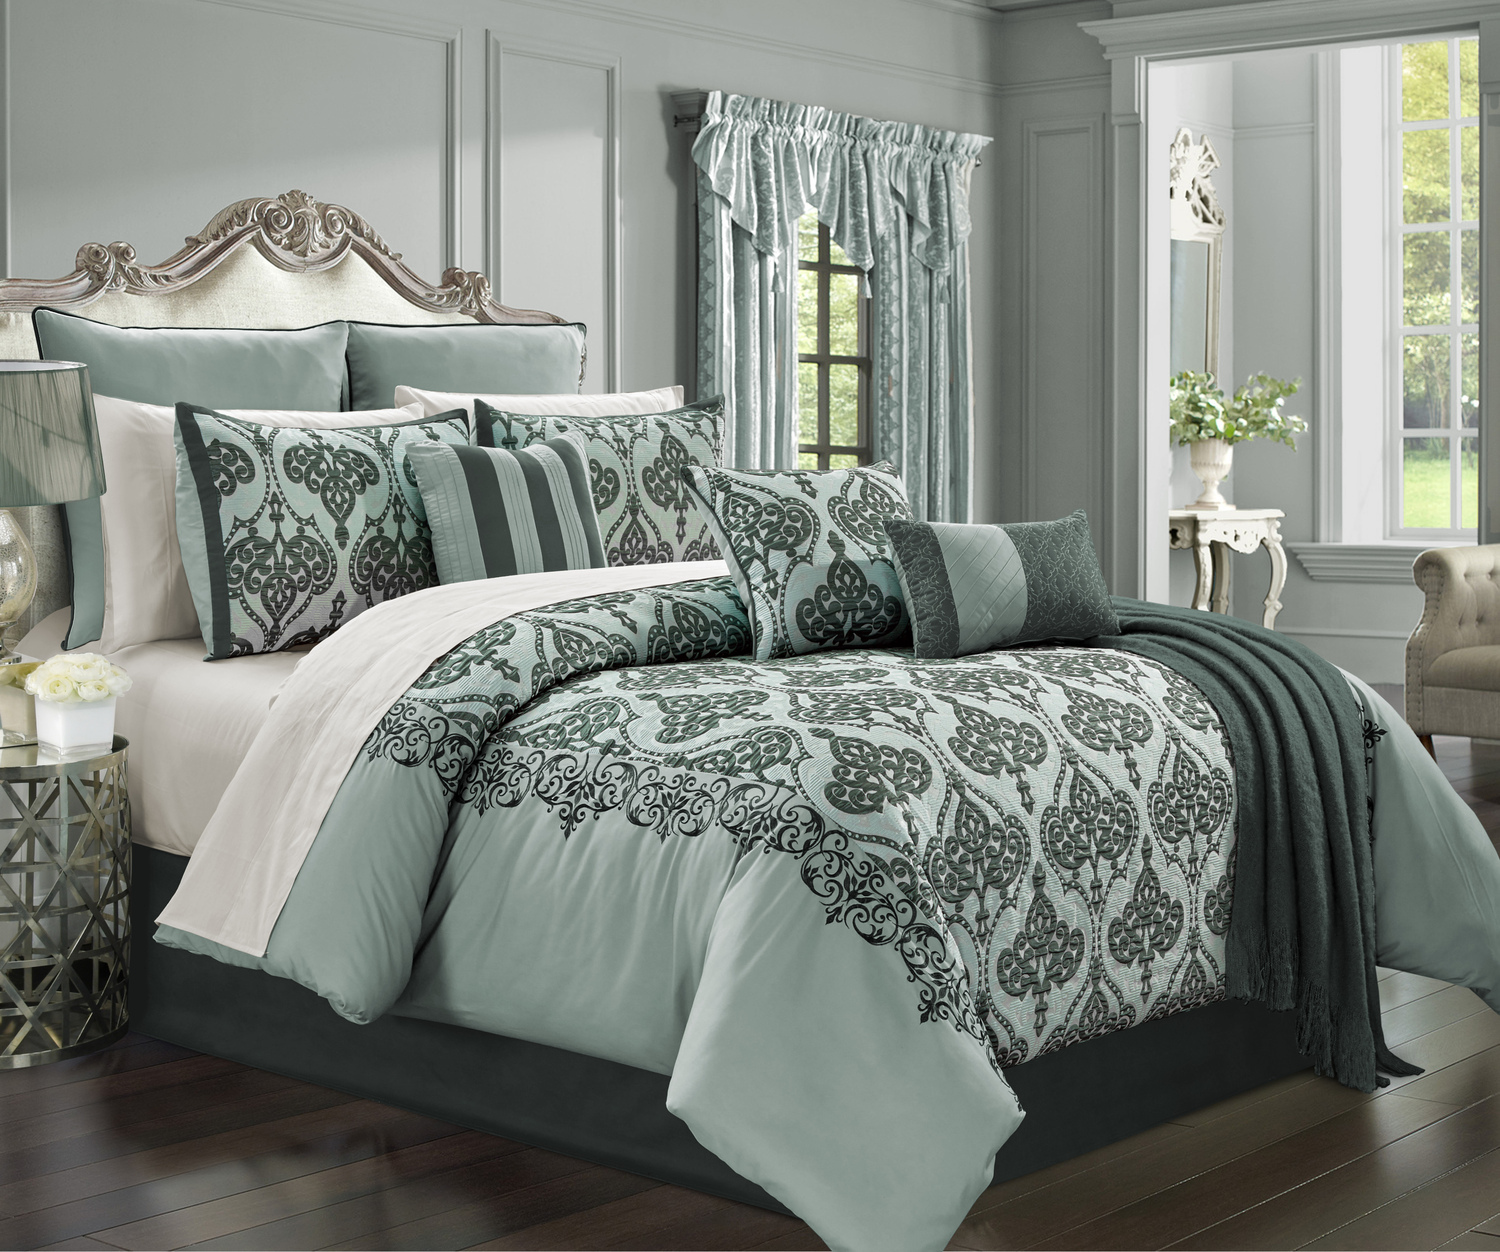 Casablanca Spa by Riverbrook Home Bedding